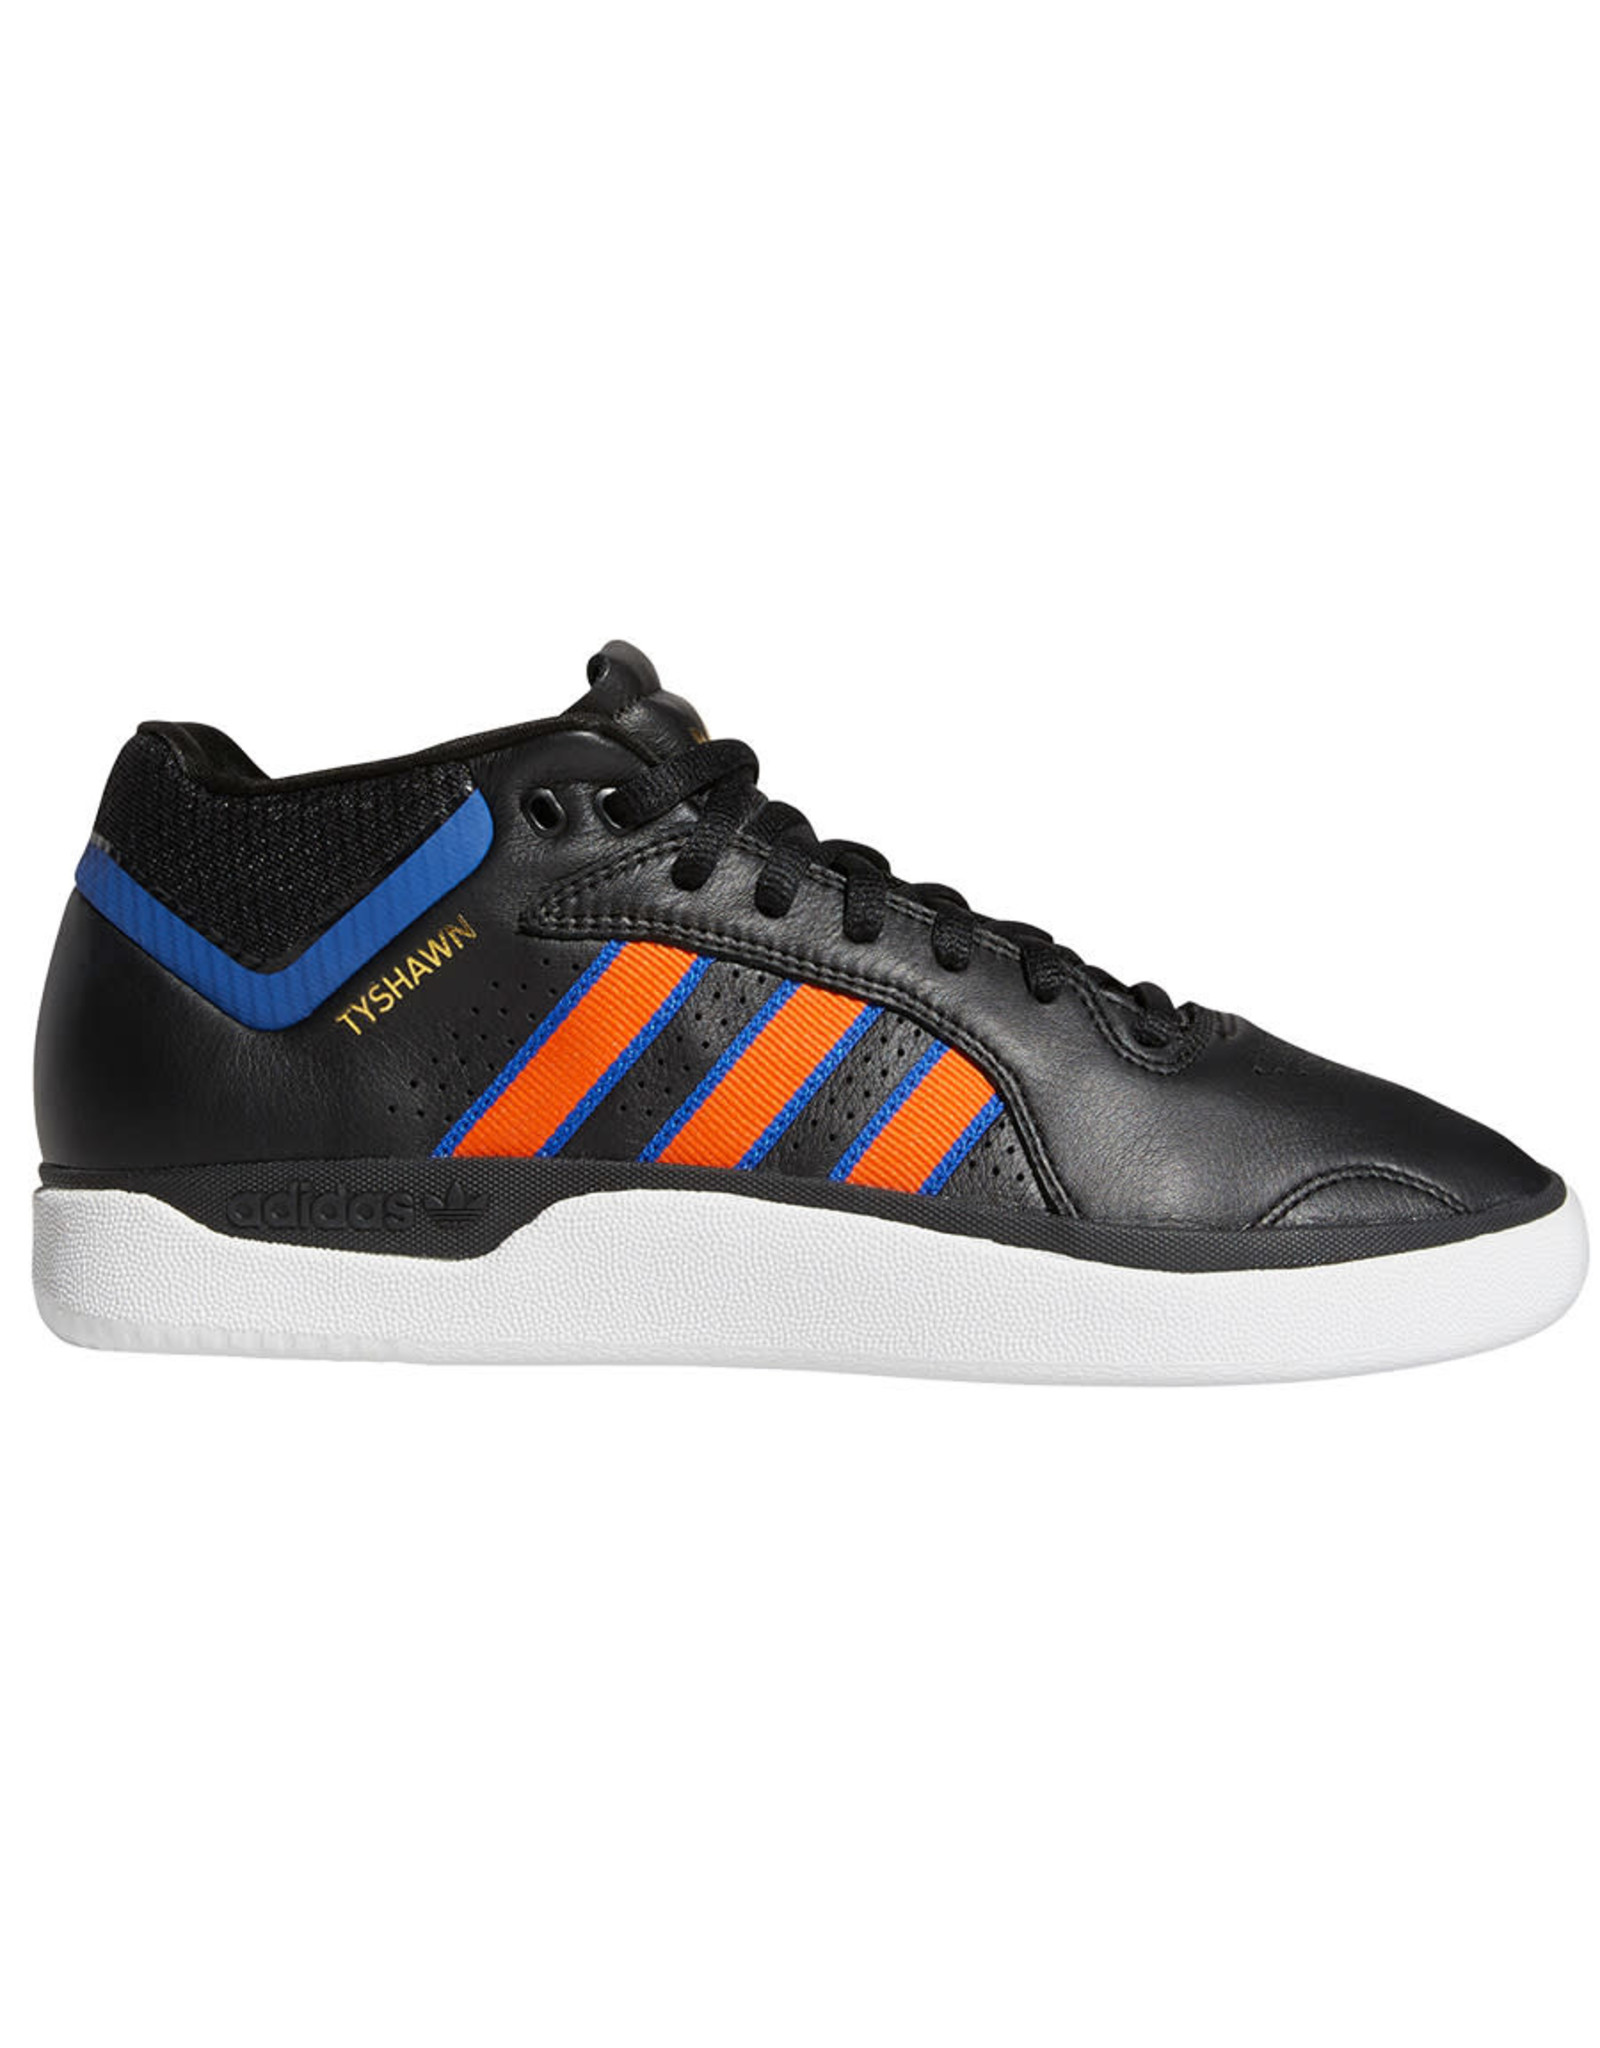 Adidas Adidas Shoe Tyshawn Pro (Black/Orange)